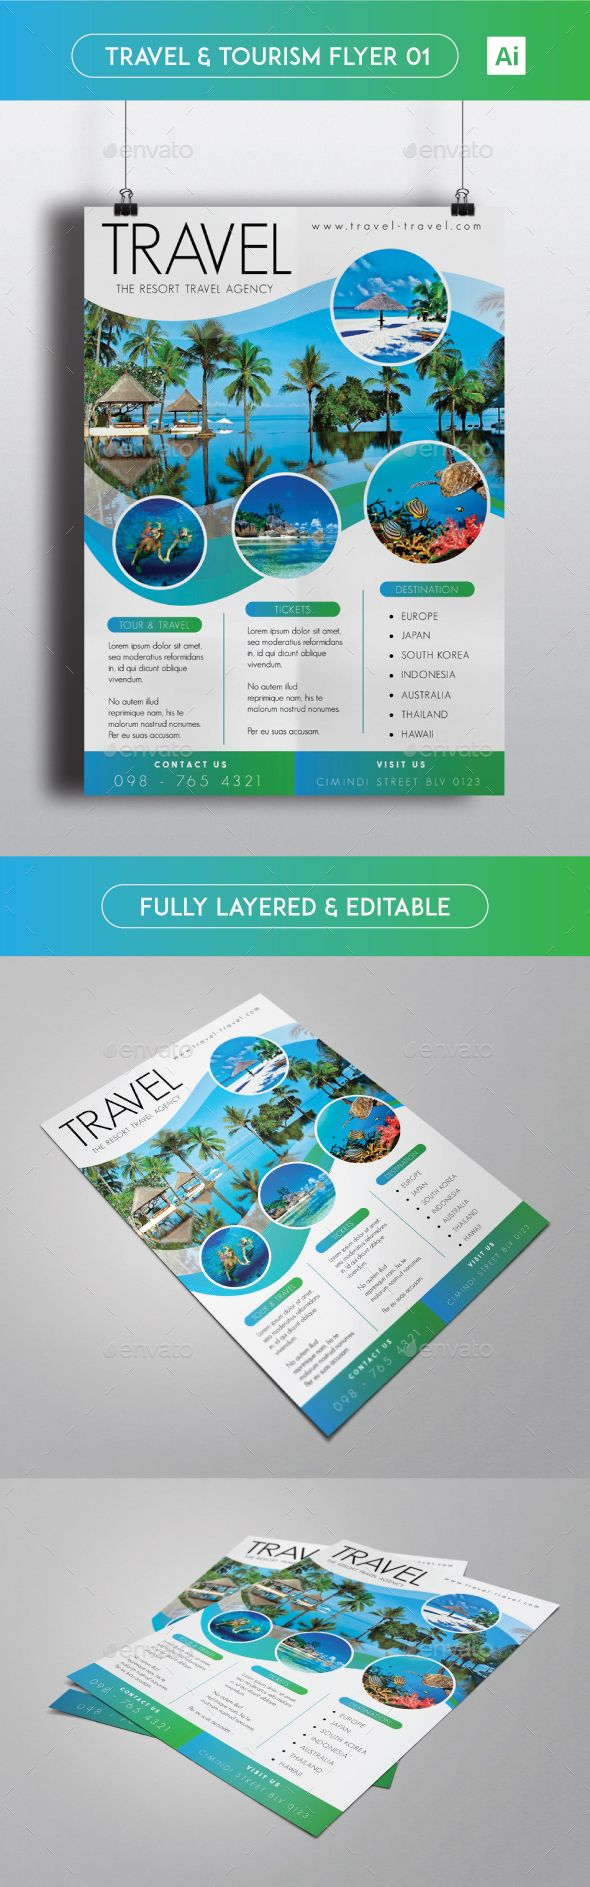 travel tourism flyer template ai illustrator flyer templates